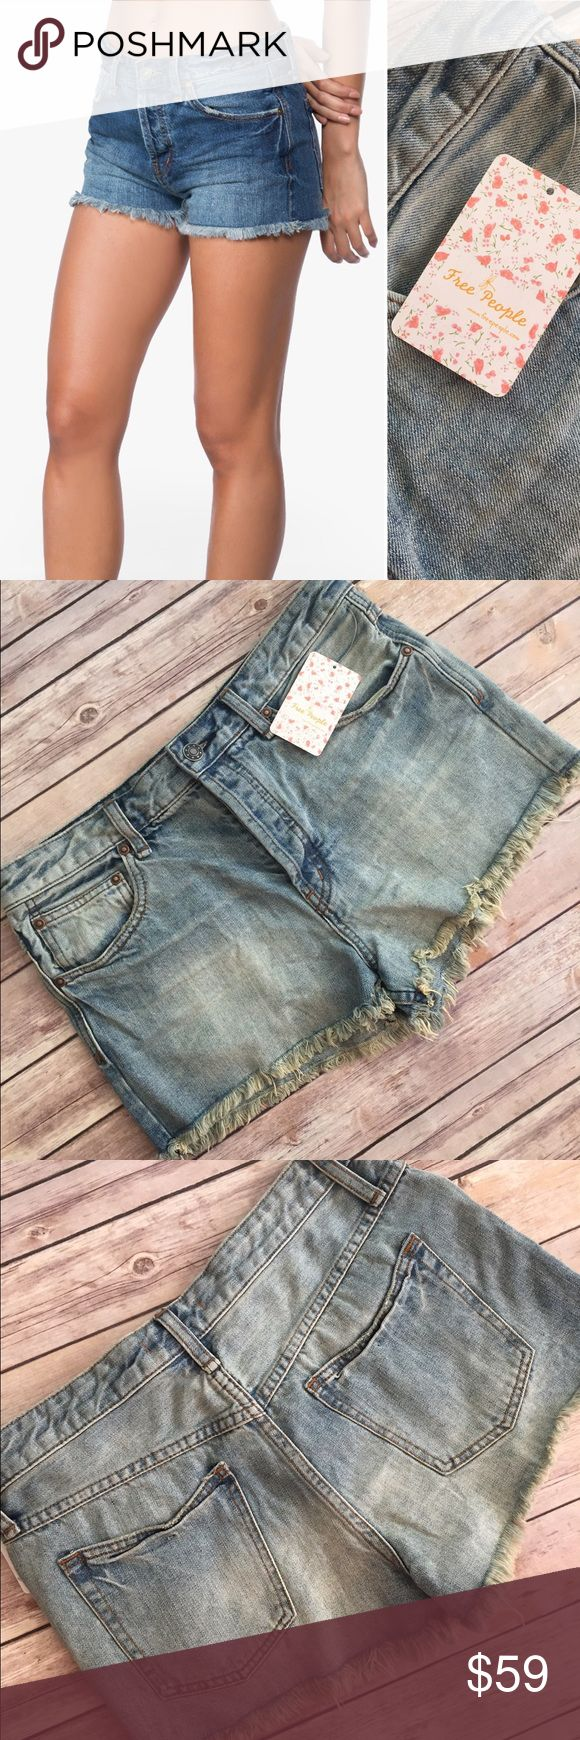 FREE PEOPLE Cutoff Jean Shorts Size 30 NWT FREE PEOPLE Cutoff Jean Shorts NWT. Size 30 waist. Closet staple, goes with everything!!!Retails for $69 Free People Shorts Jean Shorts